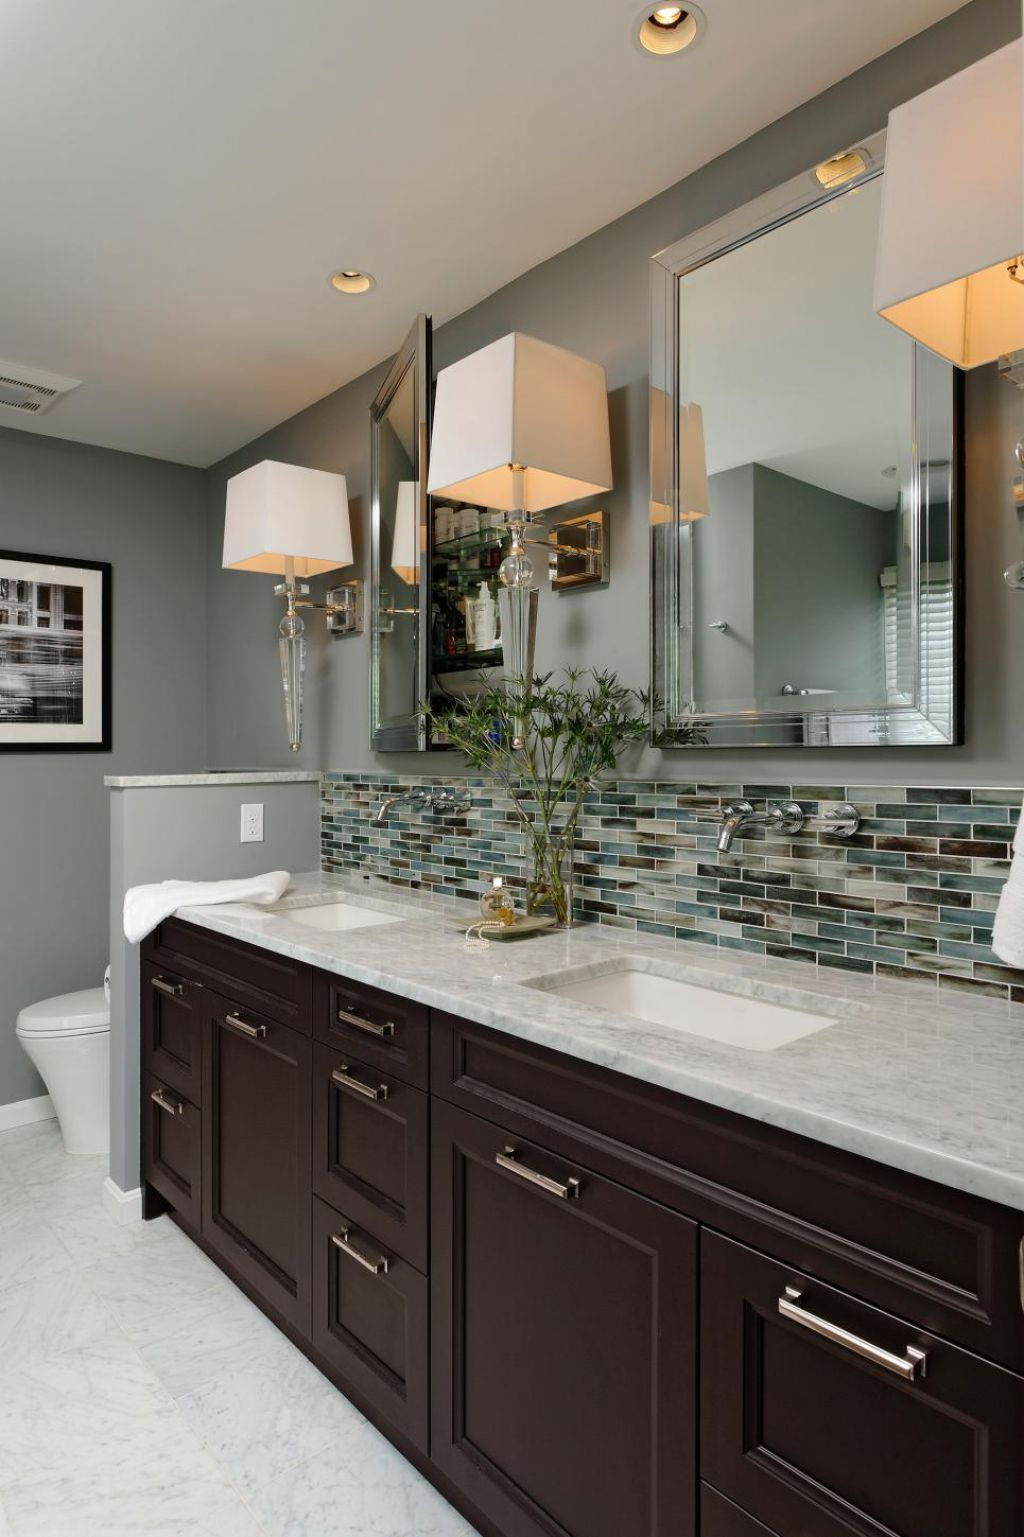 Stylish Bathroom With Wall Sconces Featured Large Shades And - Medicine cabinets for bathrooms for bathroom decor ideas